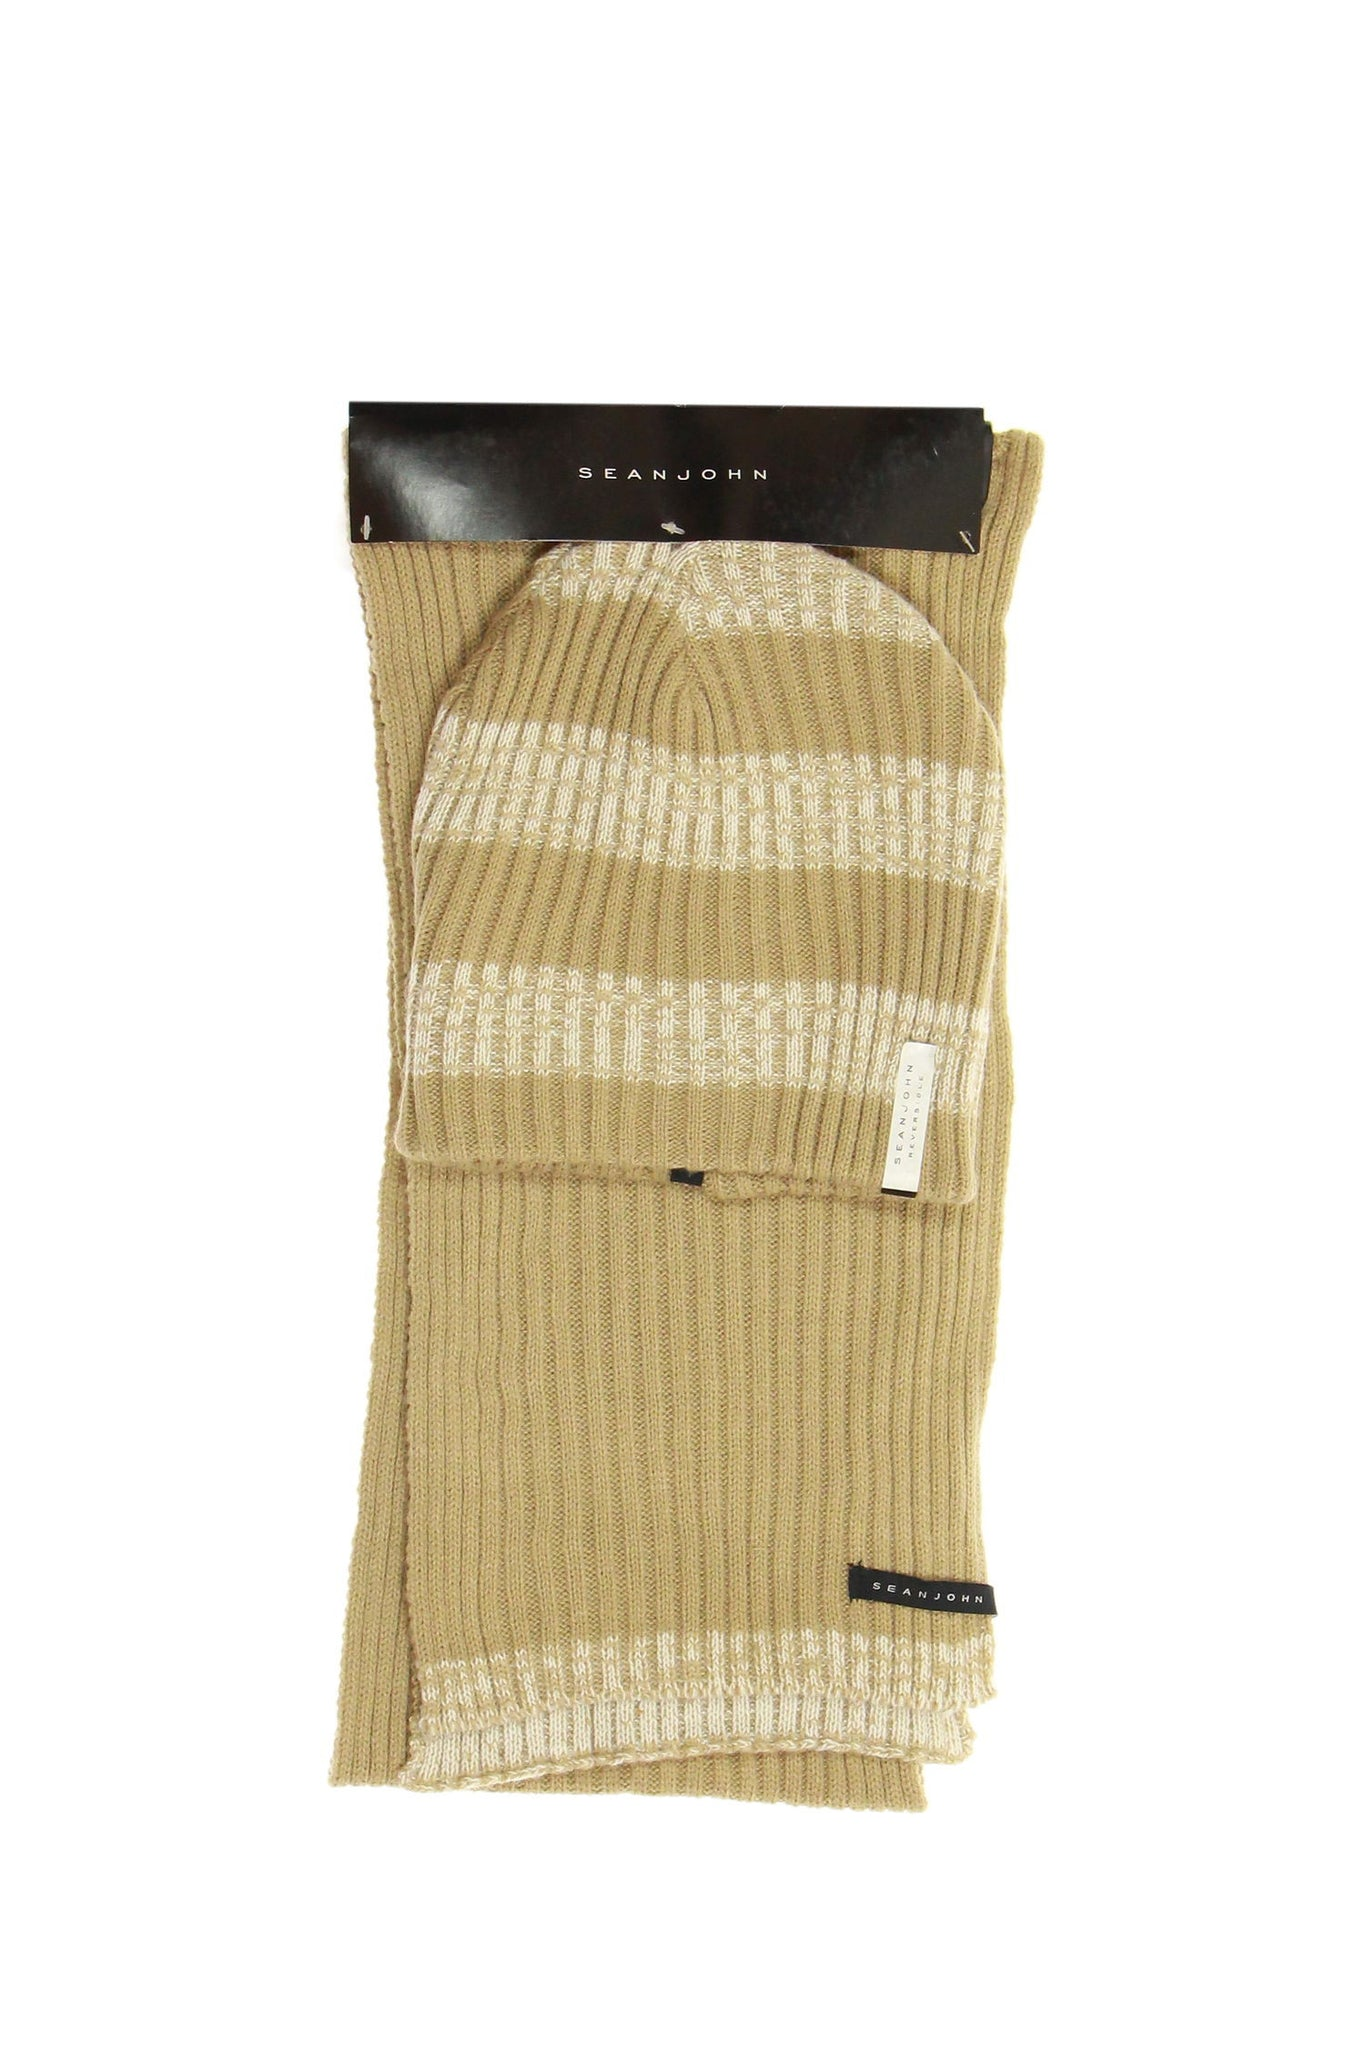 Sean John Mens Beige Striped Beanie